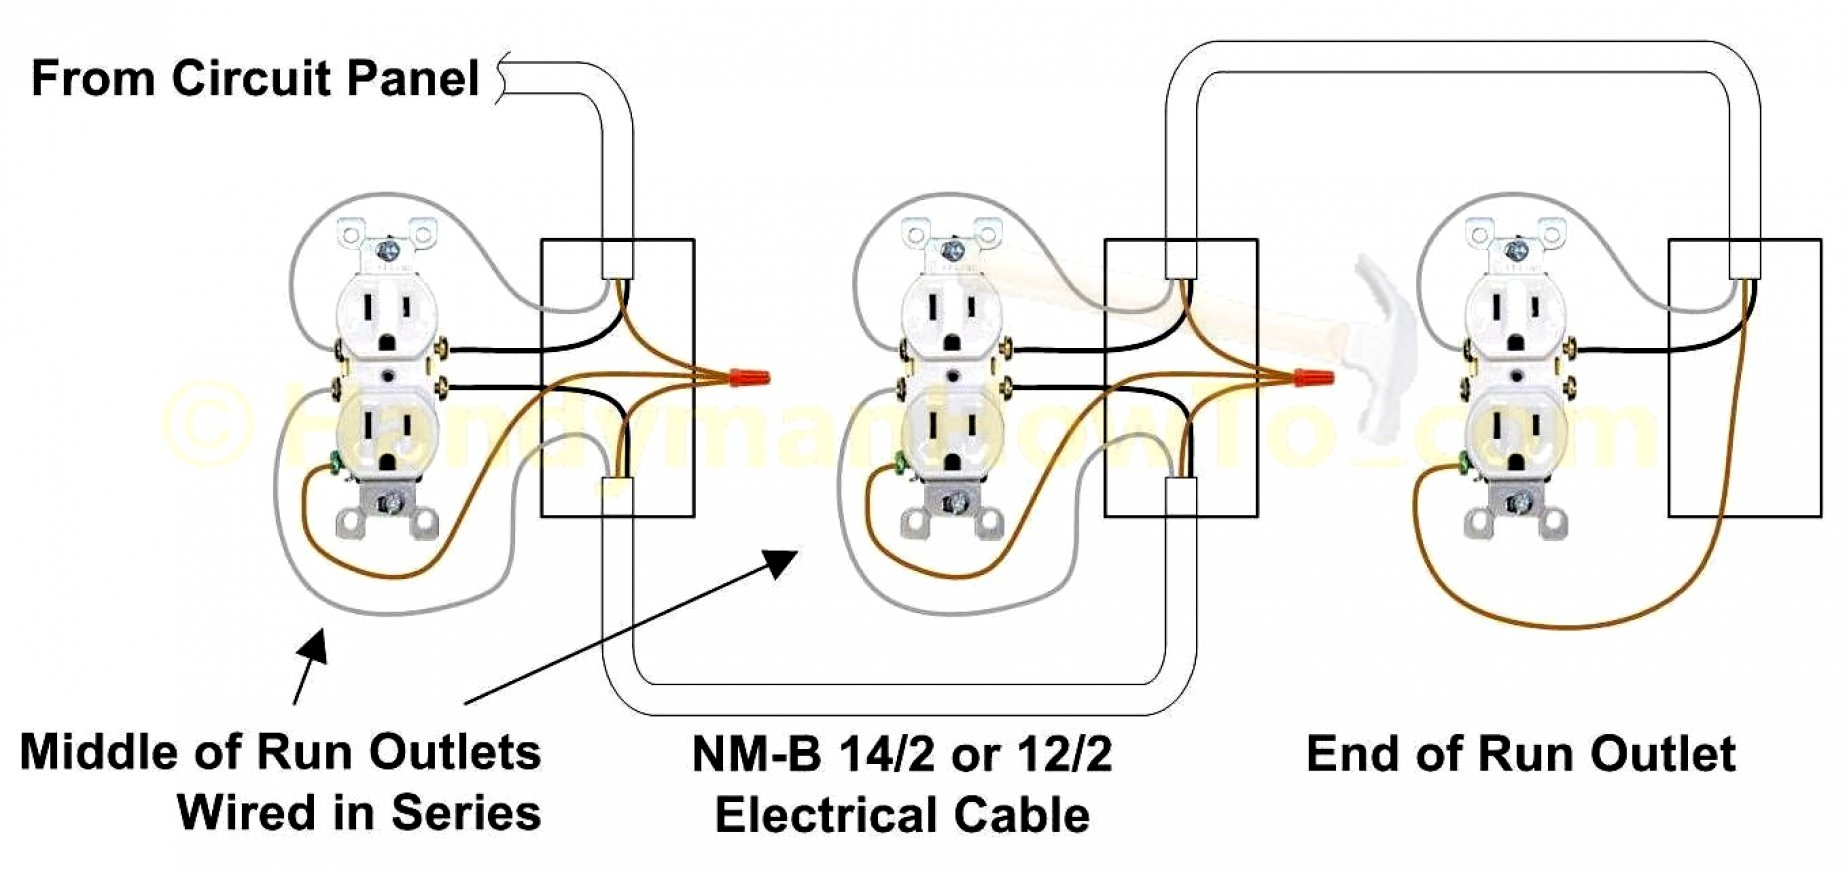 House Receptacle Wiring Diagrams | Wiring Library - Receptacle Wiring Diagram Examples